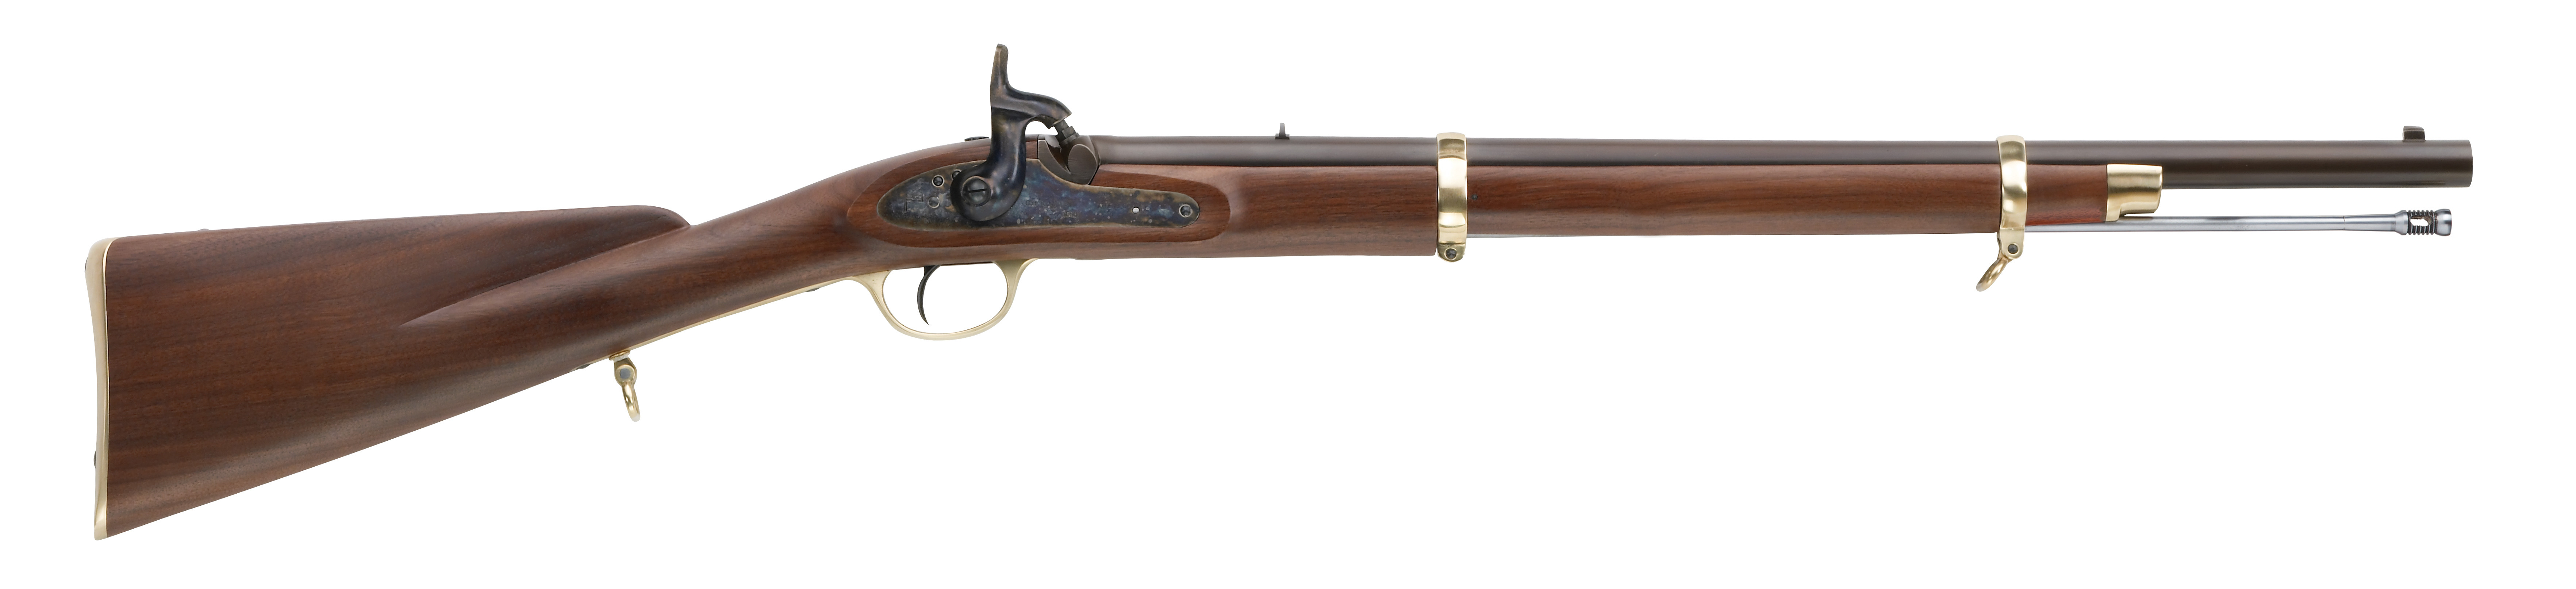 Pedersoli Cook & Brother Percussion Rifle - .58 Caliber - 33